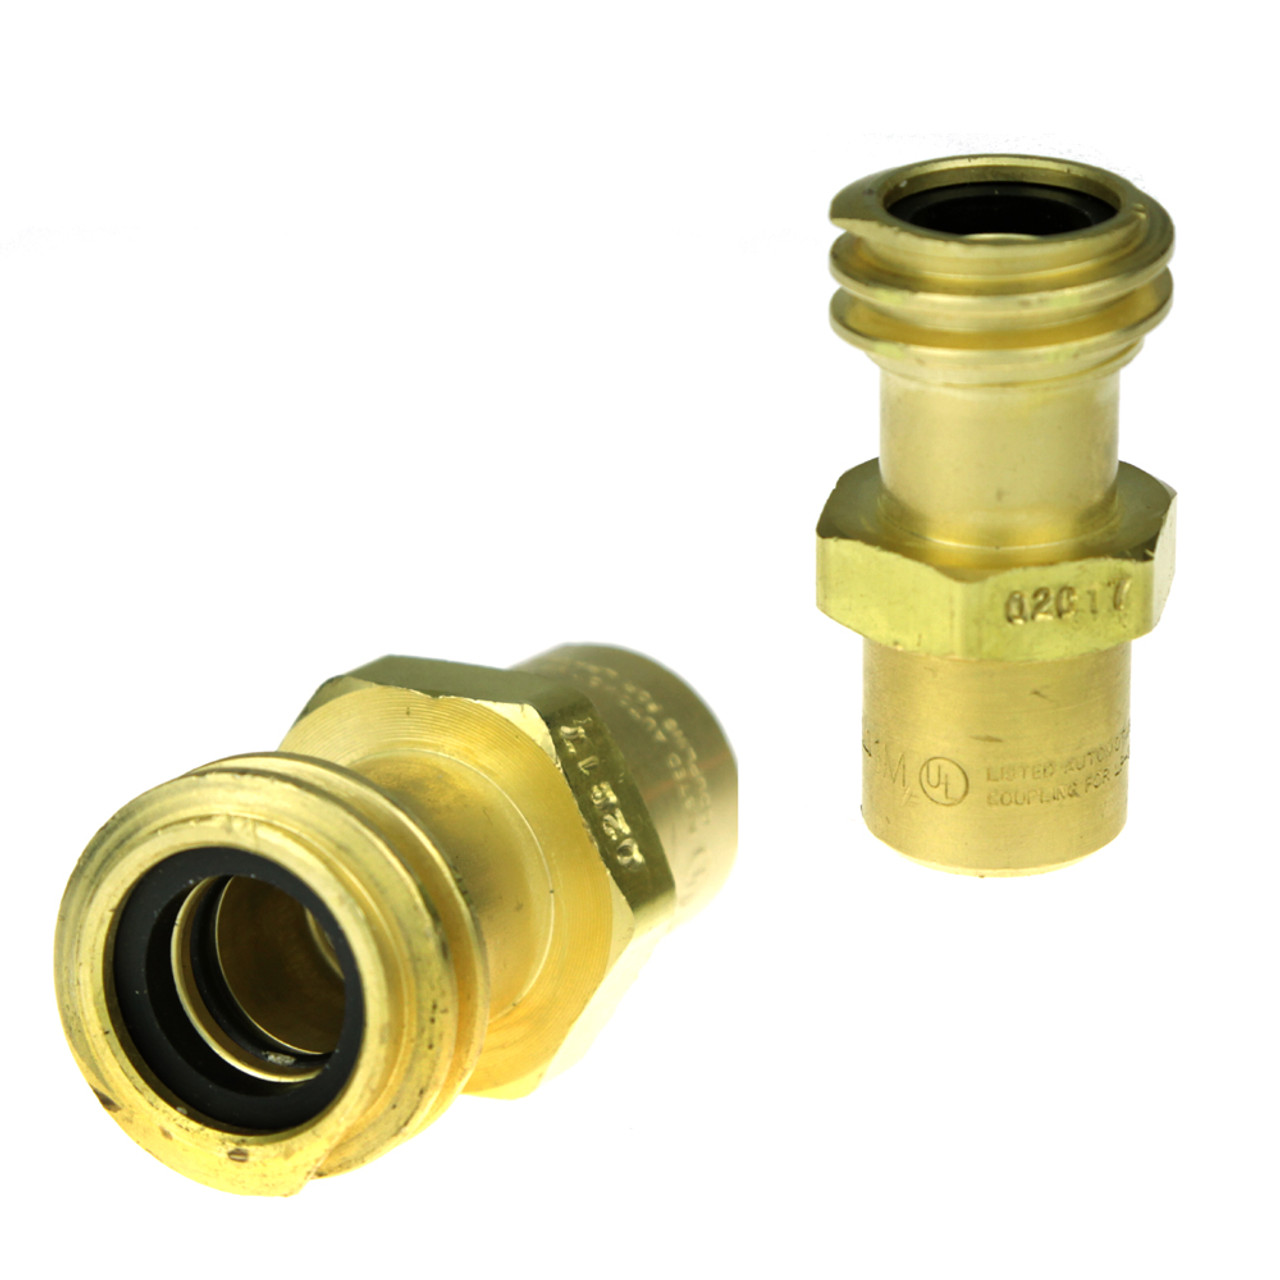 1-1//4 Acme Female Inlet x 1//4 NPT Female Outlet Rego 7141F Quick Disconnect Service Check Valve Connector